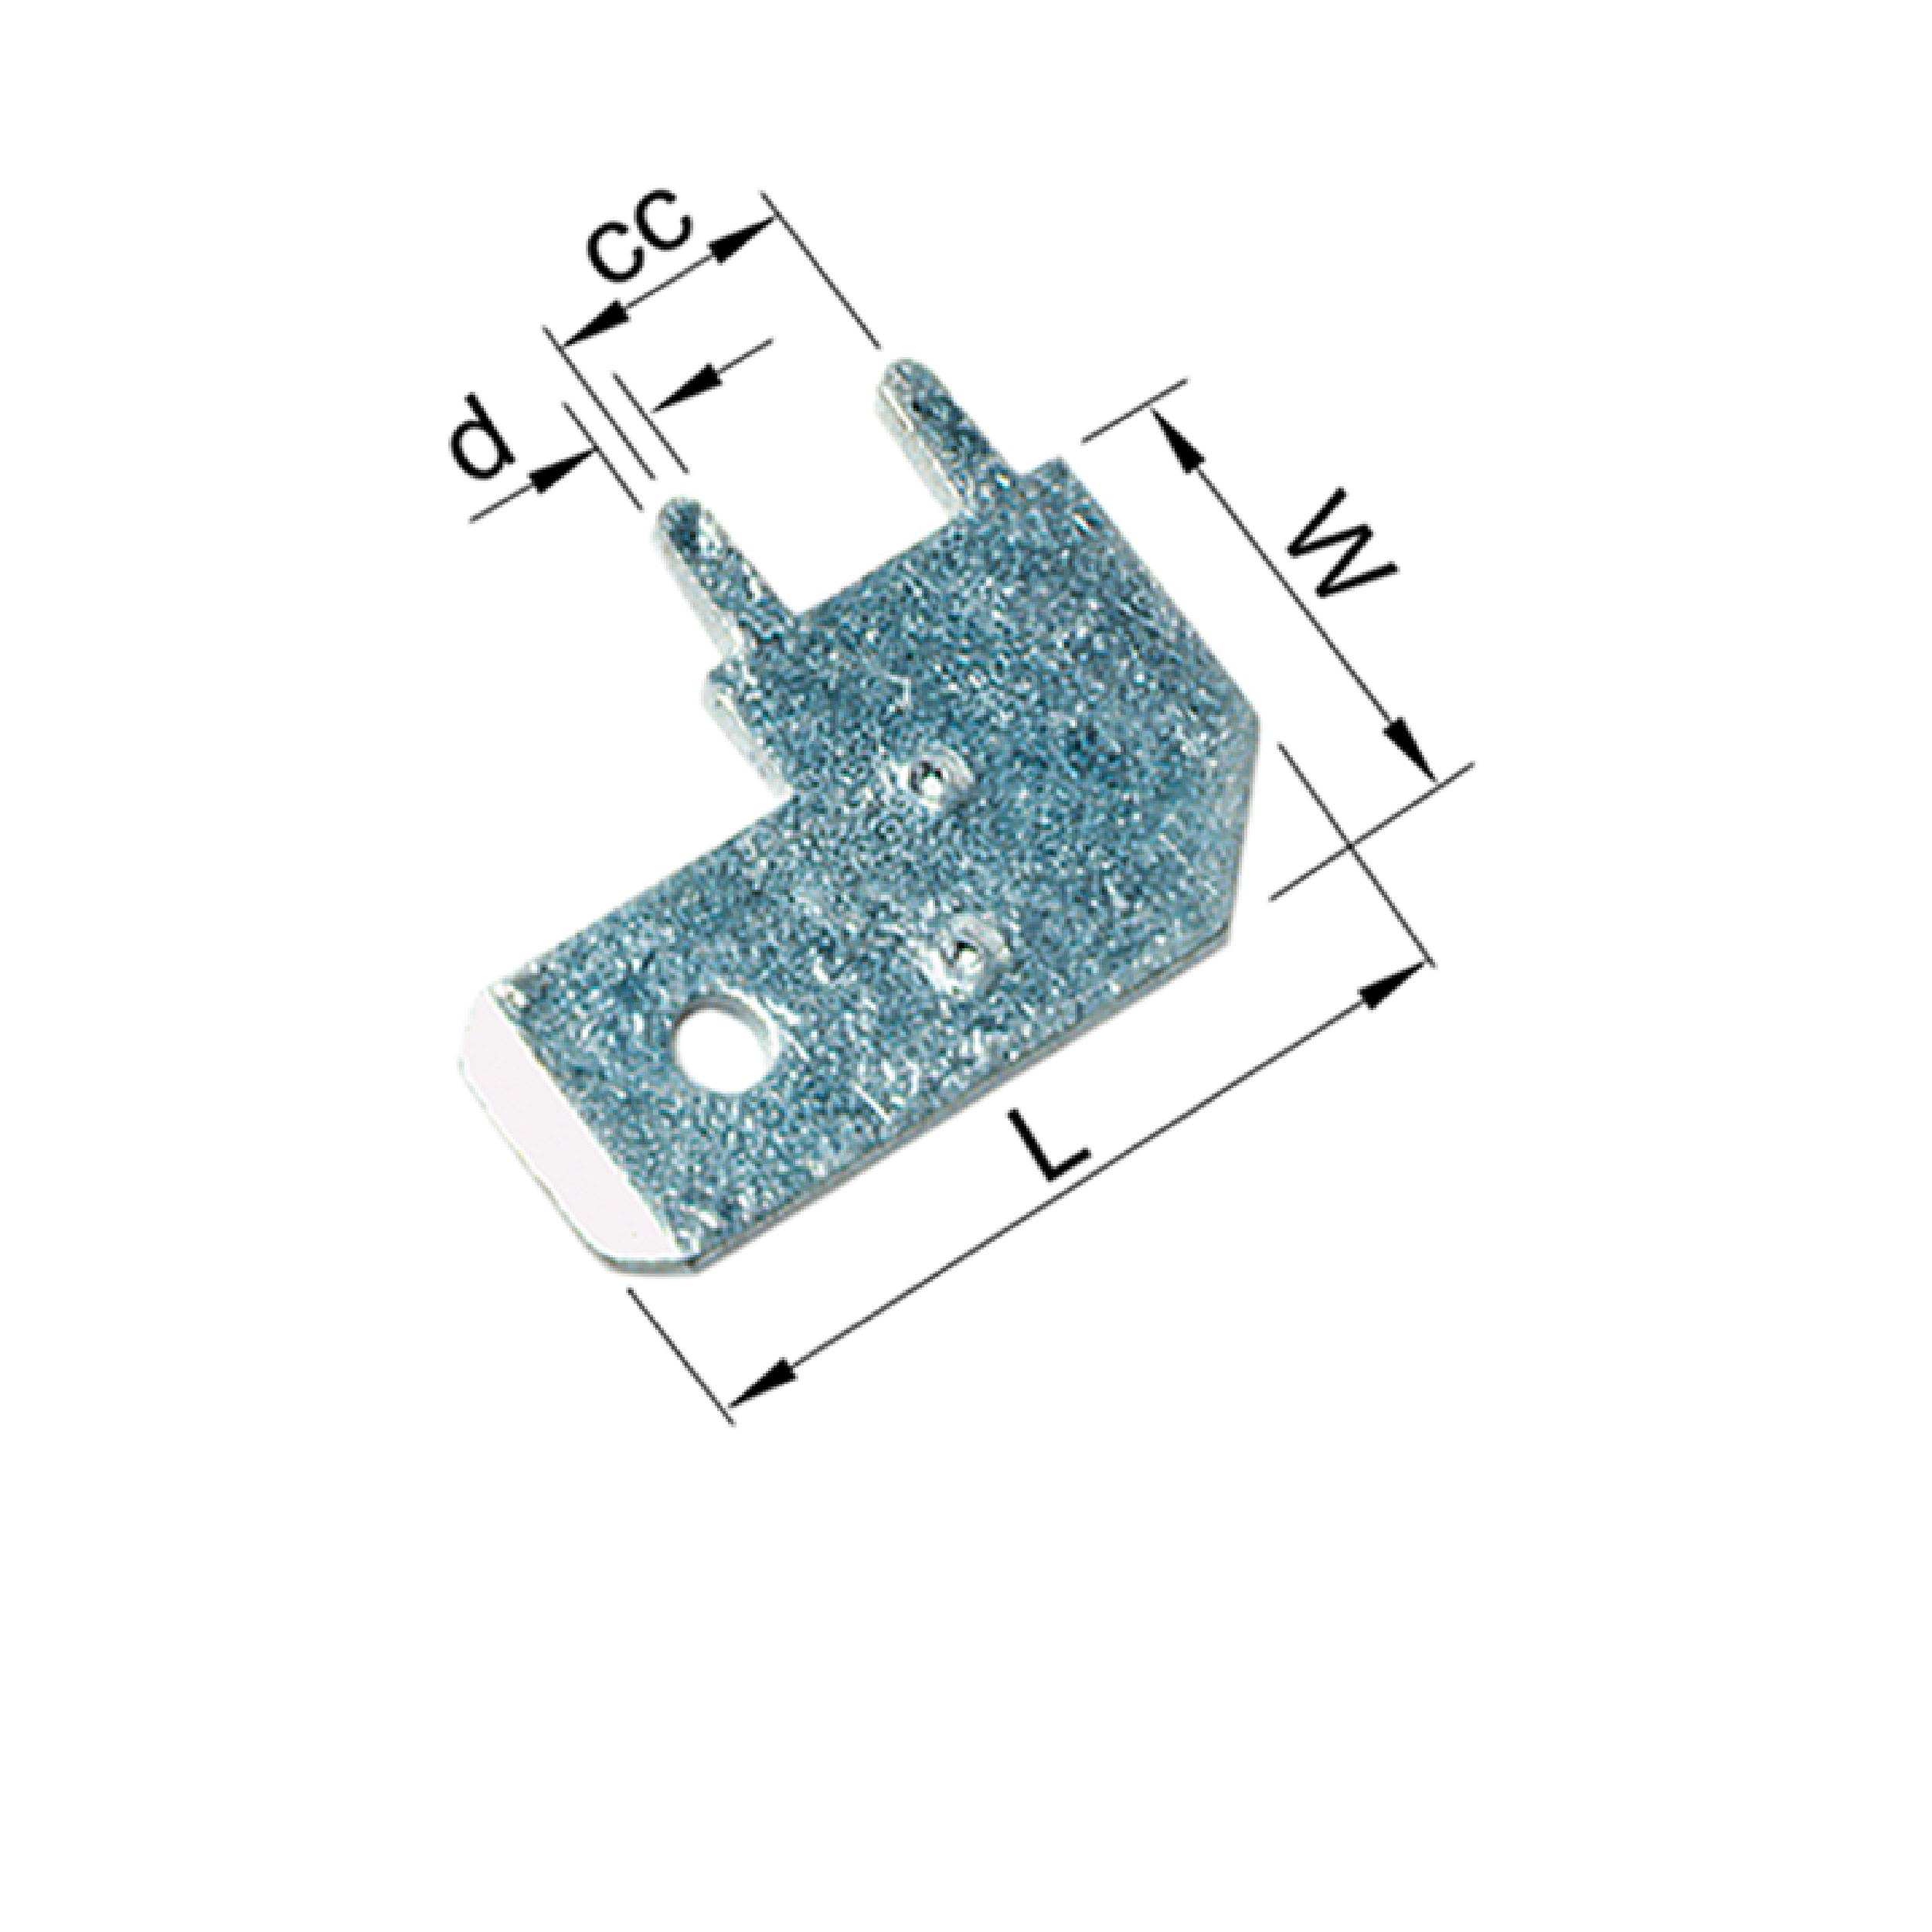 Elpress 17127 Un-Insulated Tabs for soldering